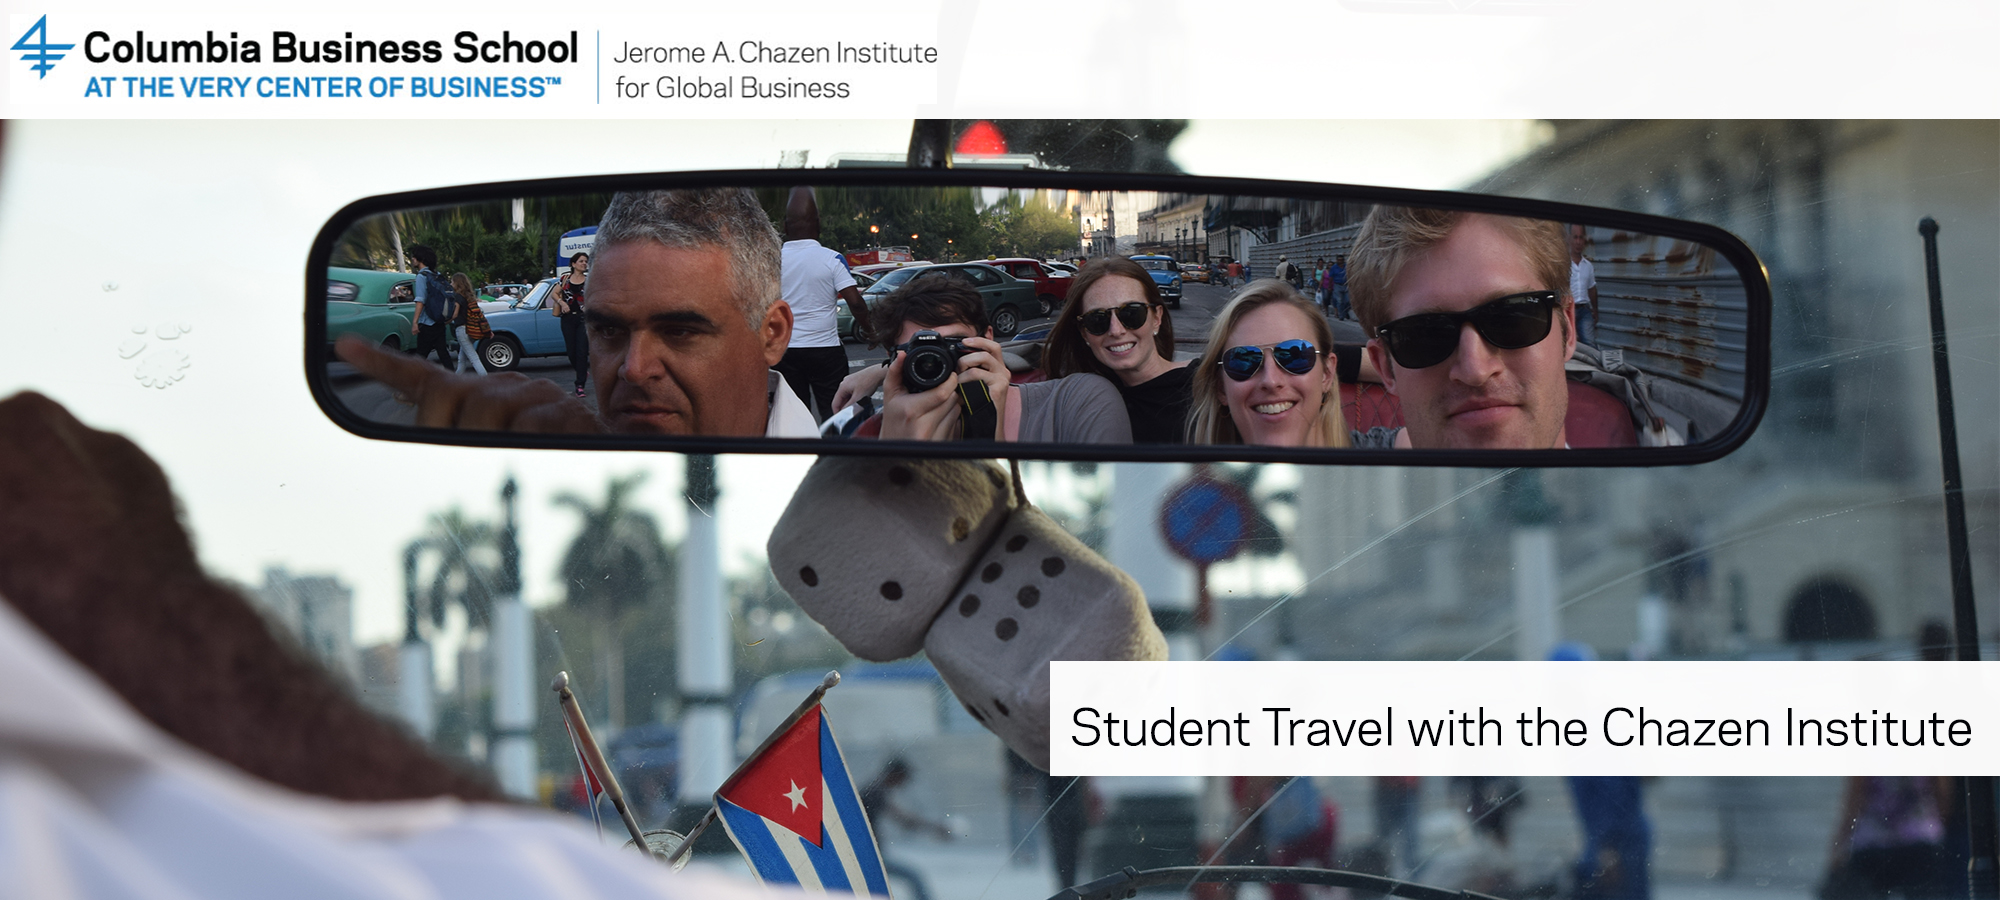 Student travel with the Chazen Institute